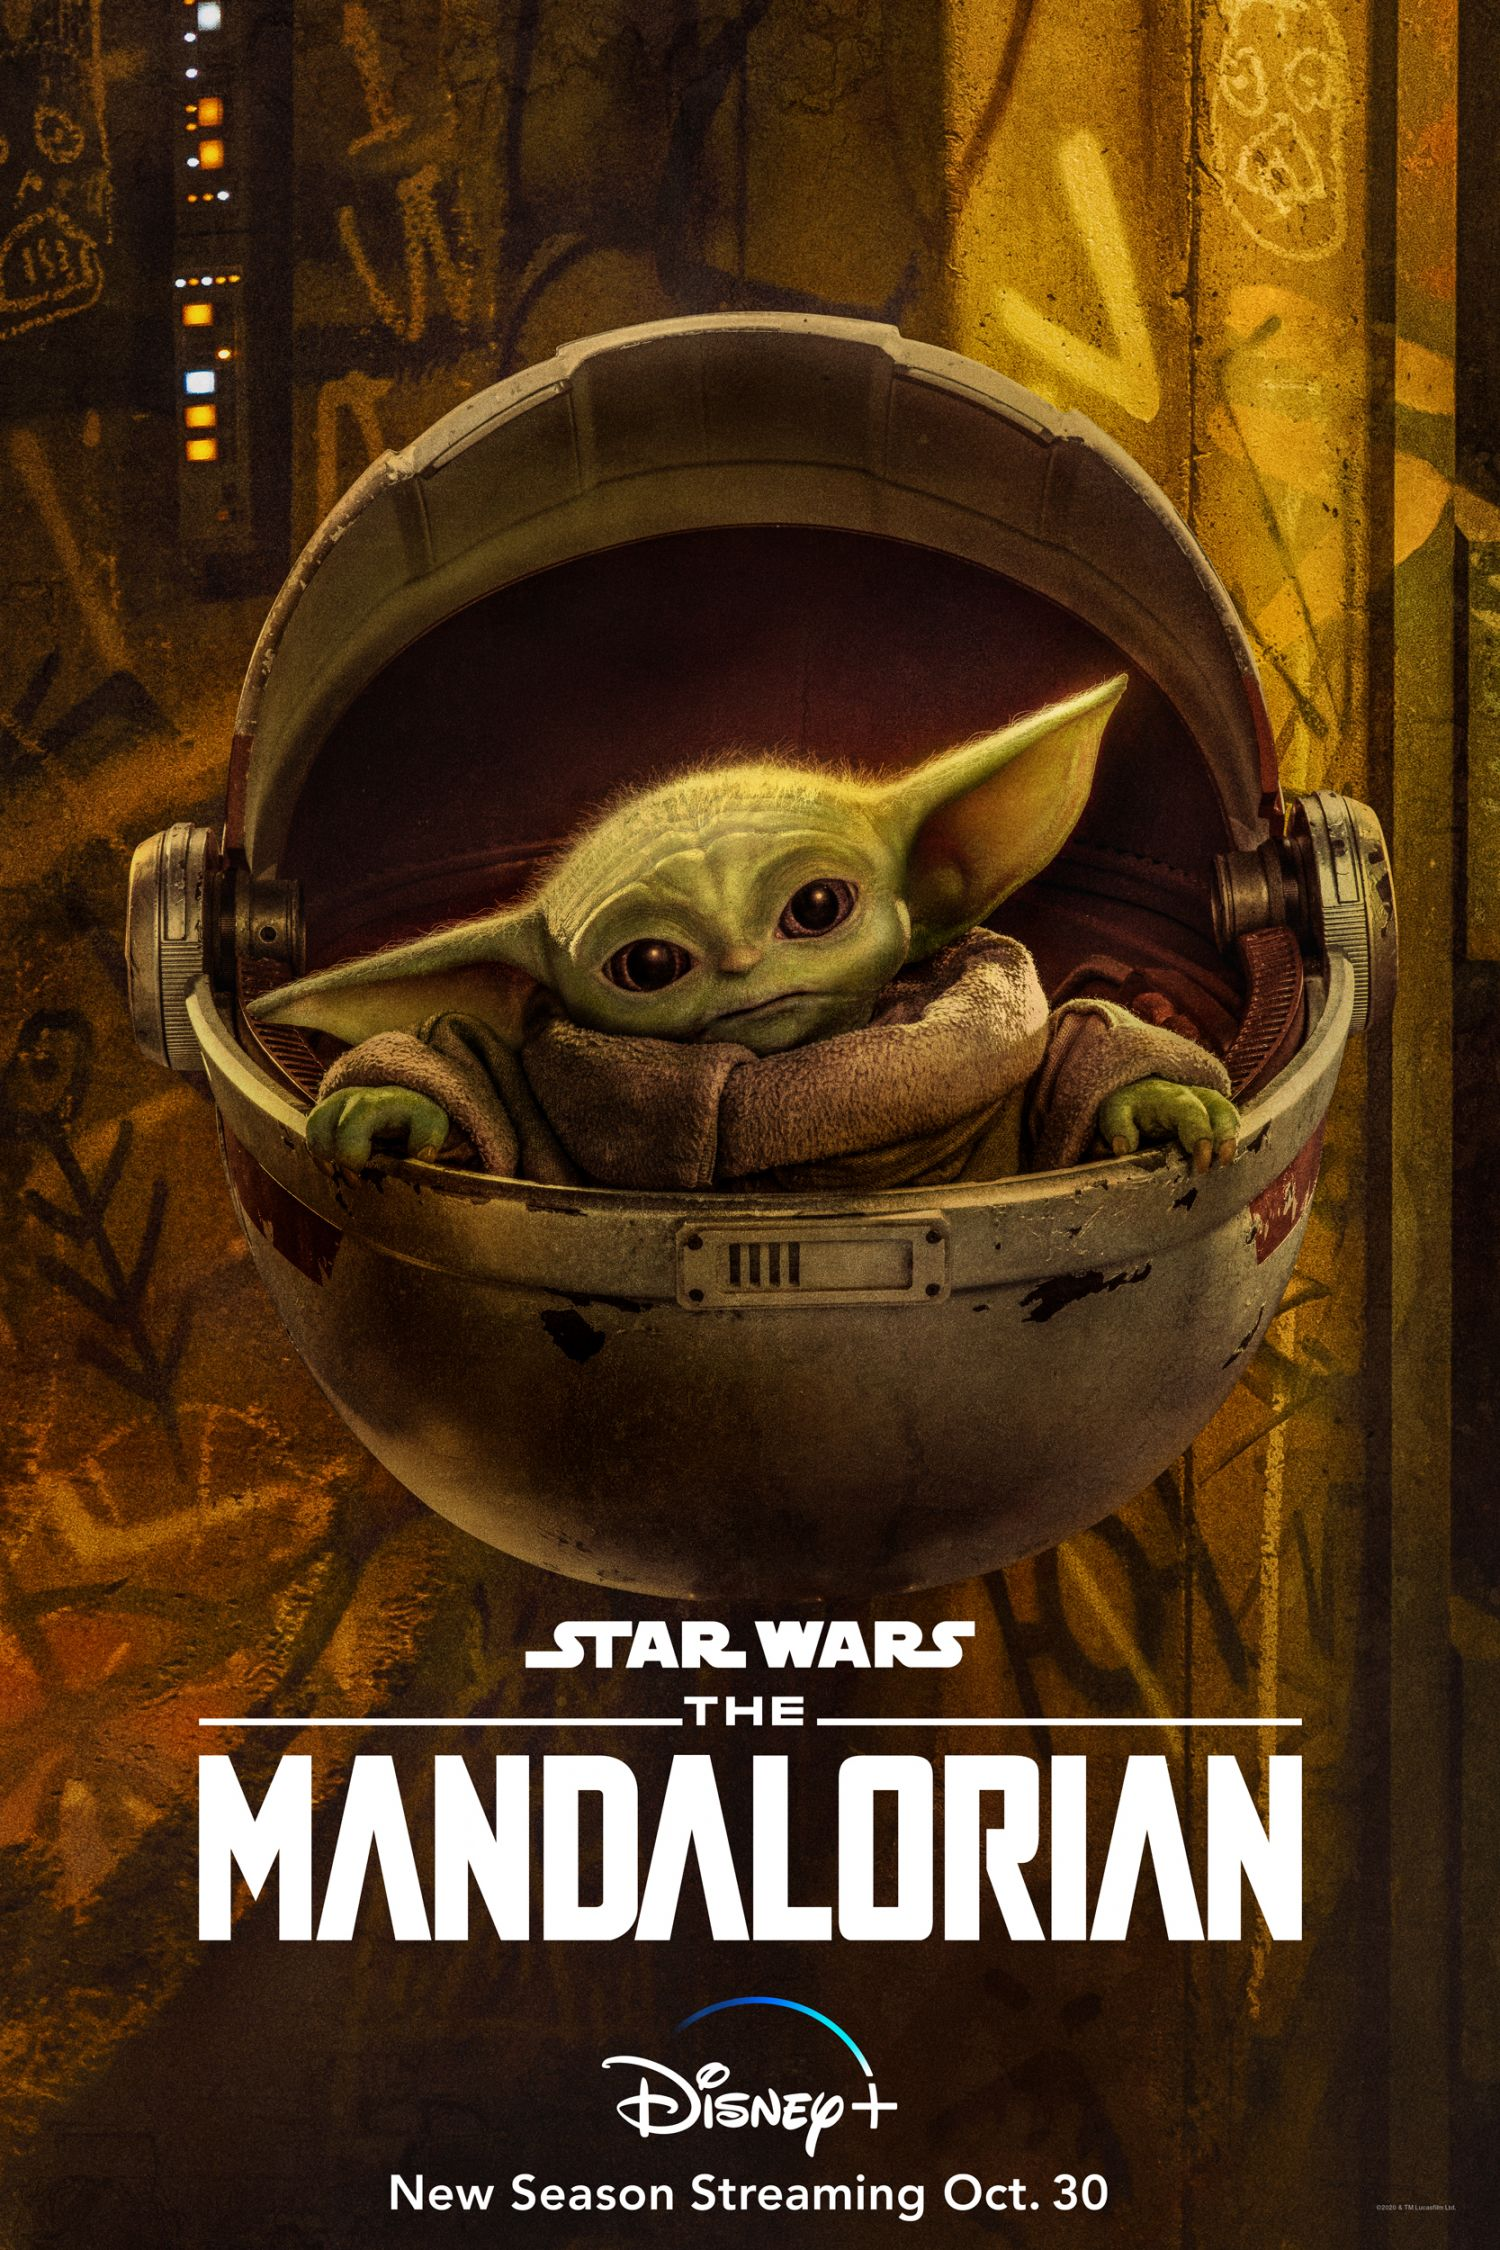 Posters Character Disney+ Mandalorian For The Releases